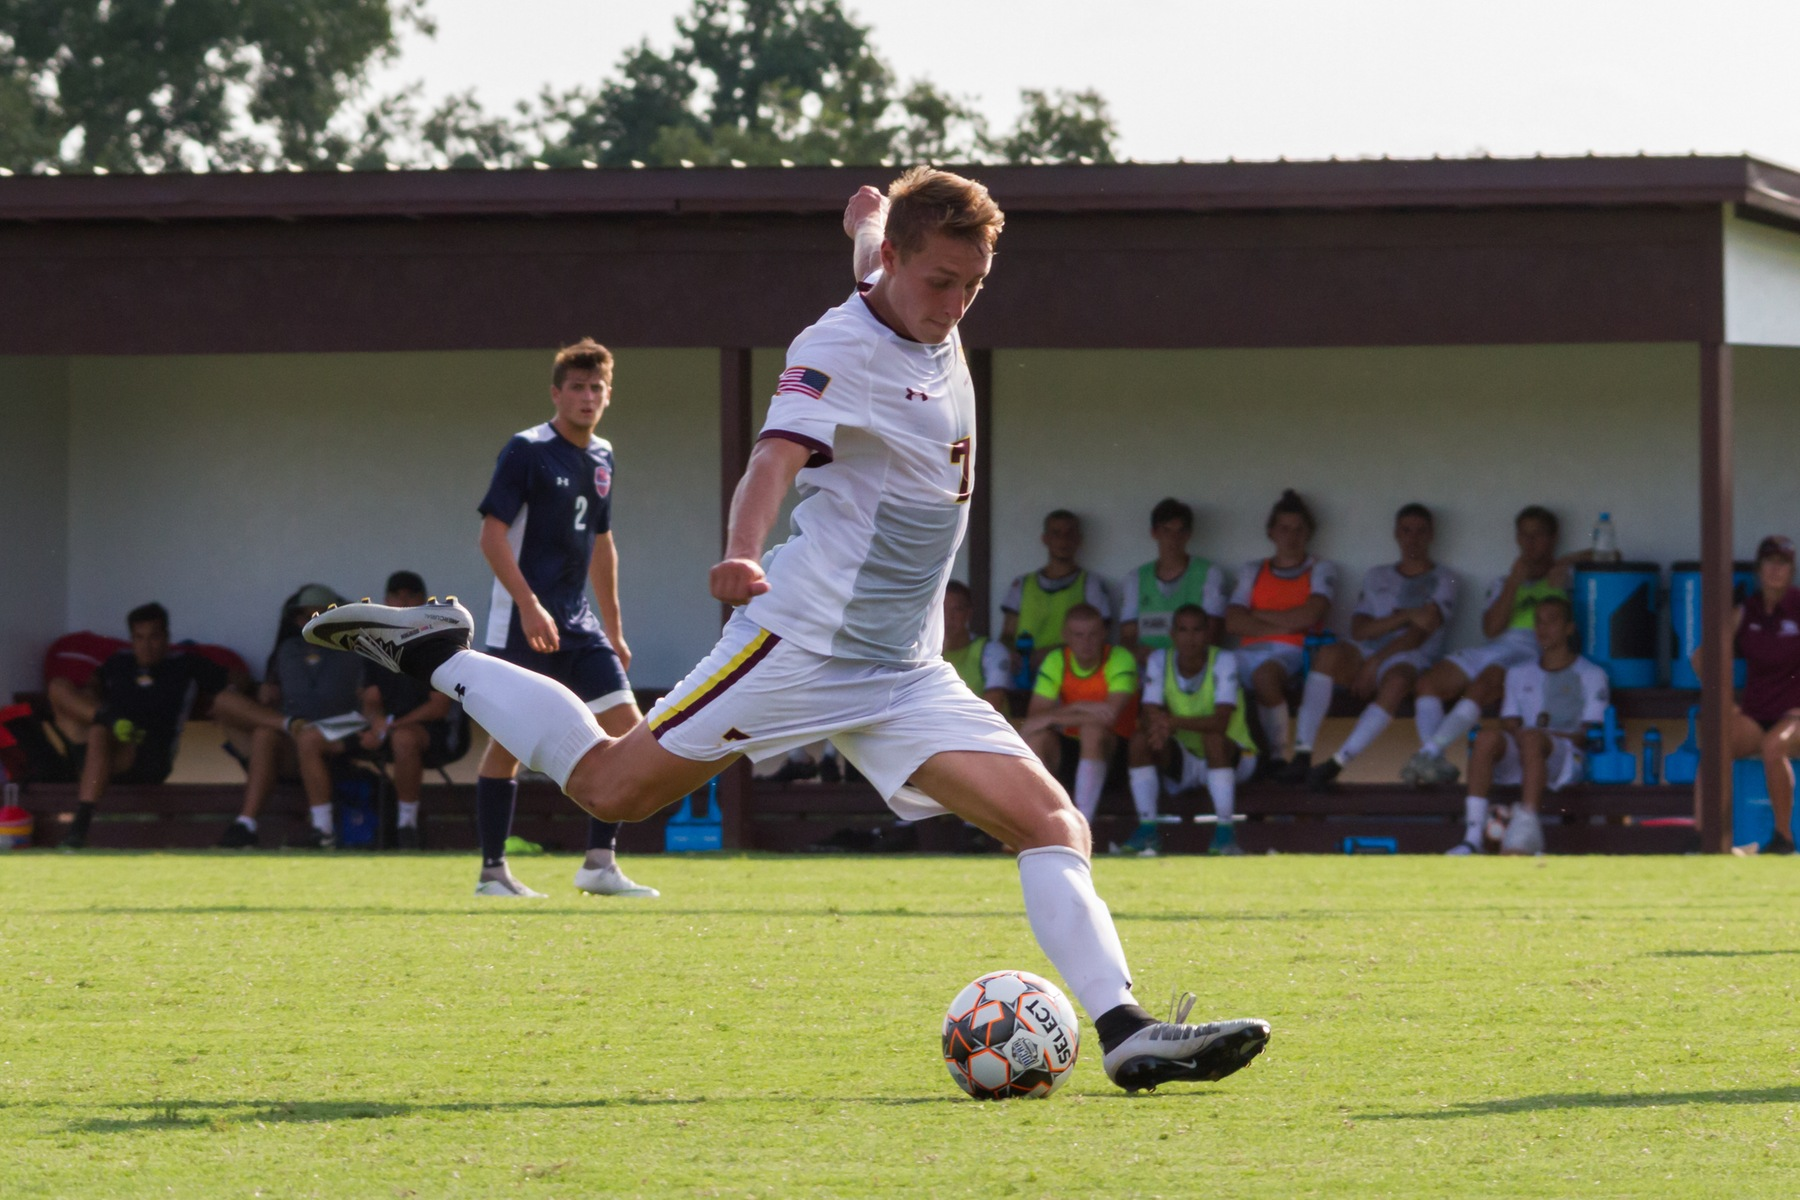 Itawamba Community College traveled to Pearl River Community College on Wednesday, Aug. 22, 2018. PRCC men won 4-0, while ICC women claimed a 4-1 victory. (BRETT RUSS/PRCC ATHLETICS)